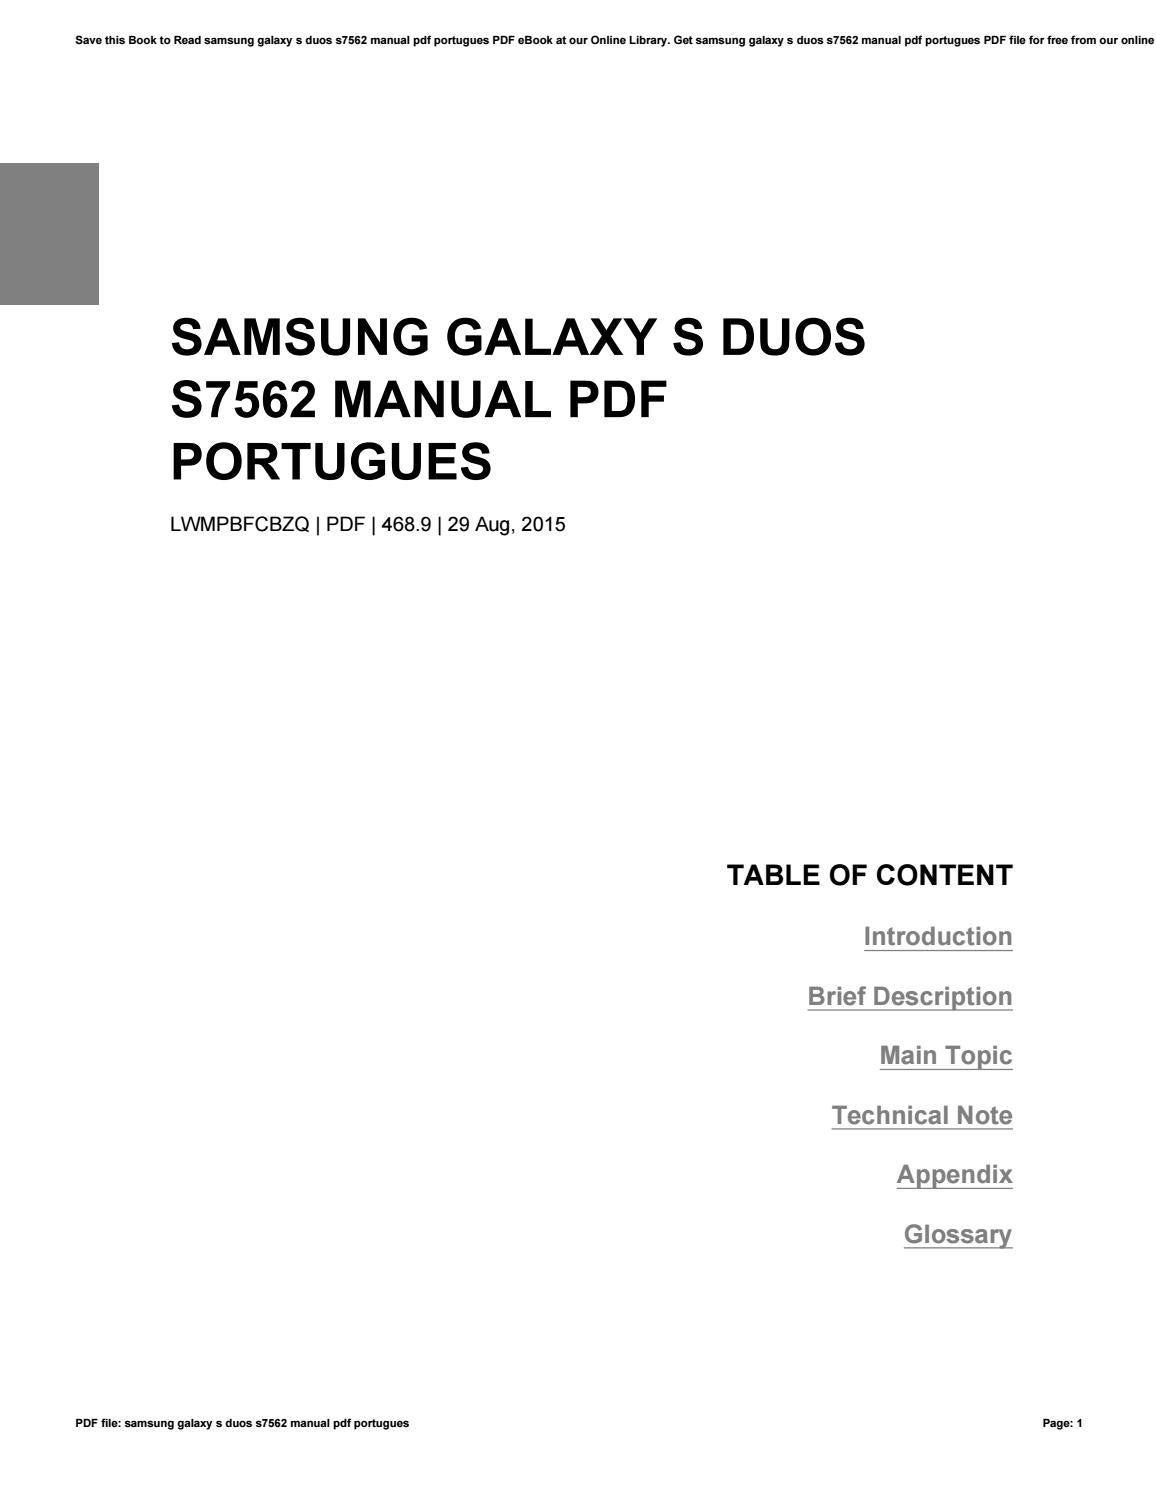 Samsung galaxy s duos s7562 manual pdf portugues by